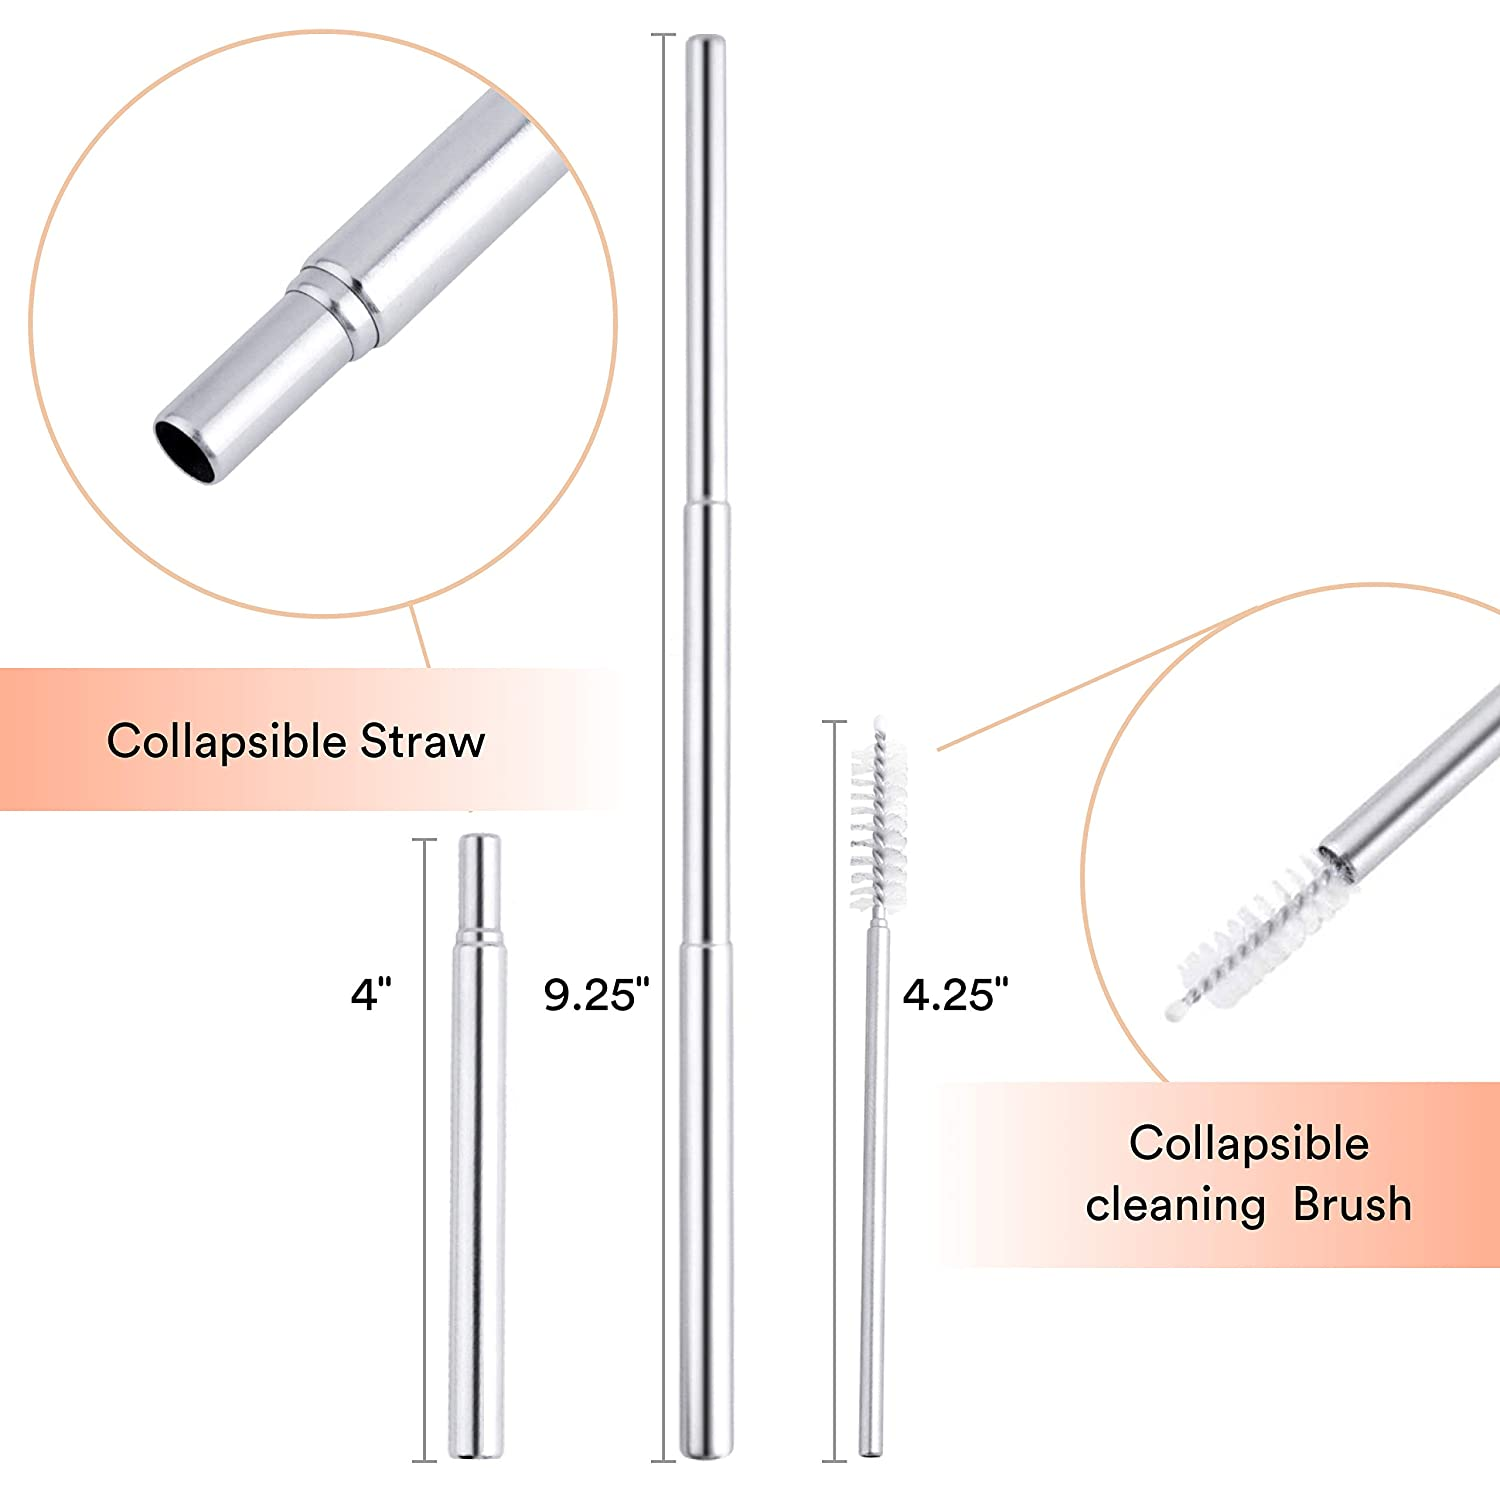 Dishwasher Safe Eco-Pals +1 Straw Cleaning Brush Straws Drinking Reusable Folding Straw Stainless Steel Straw Charcoal